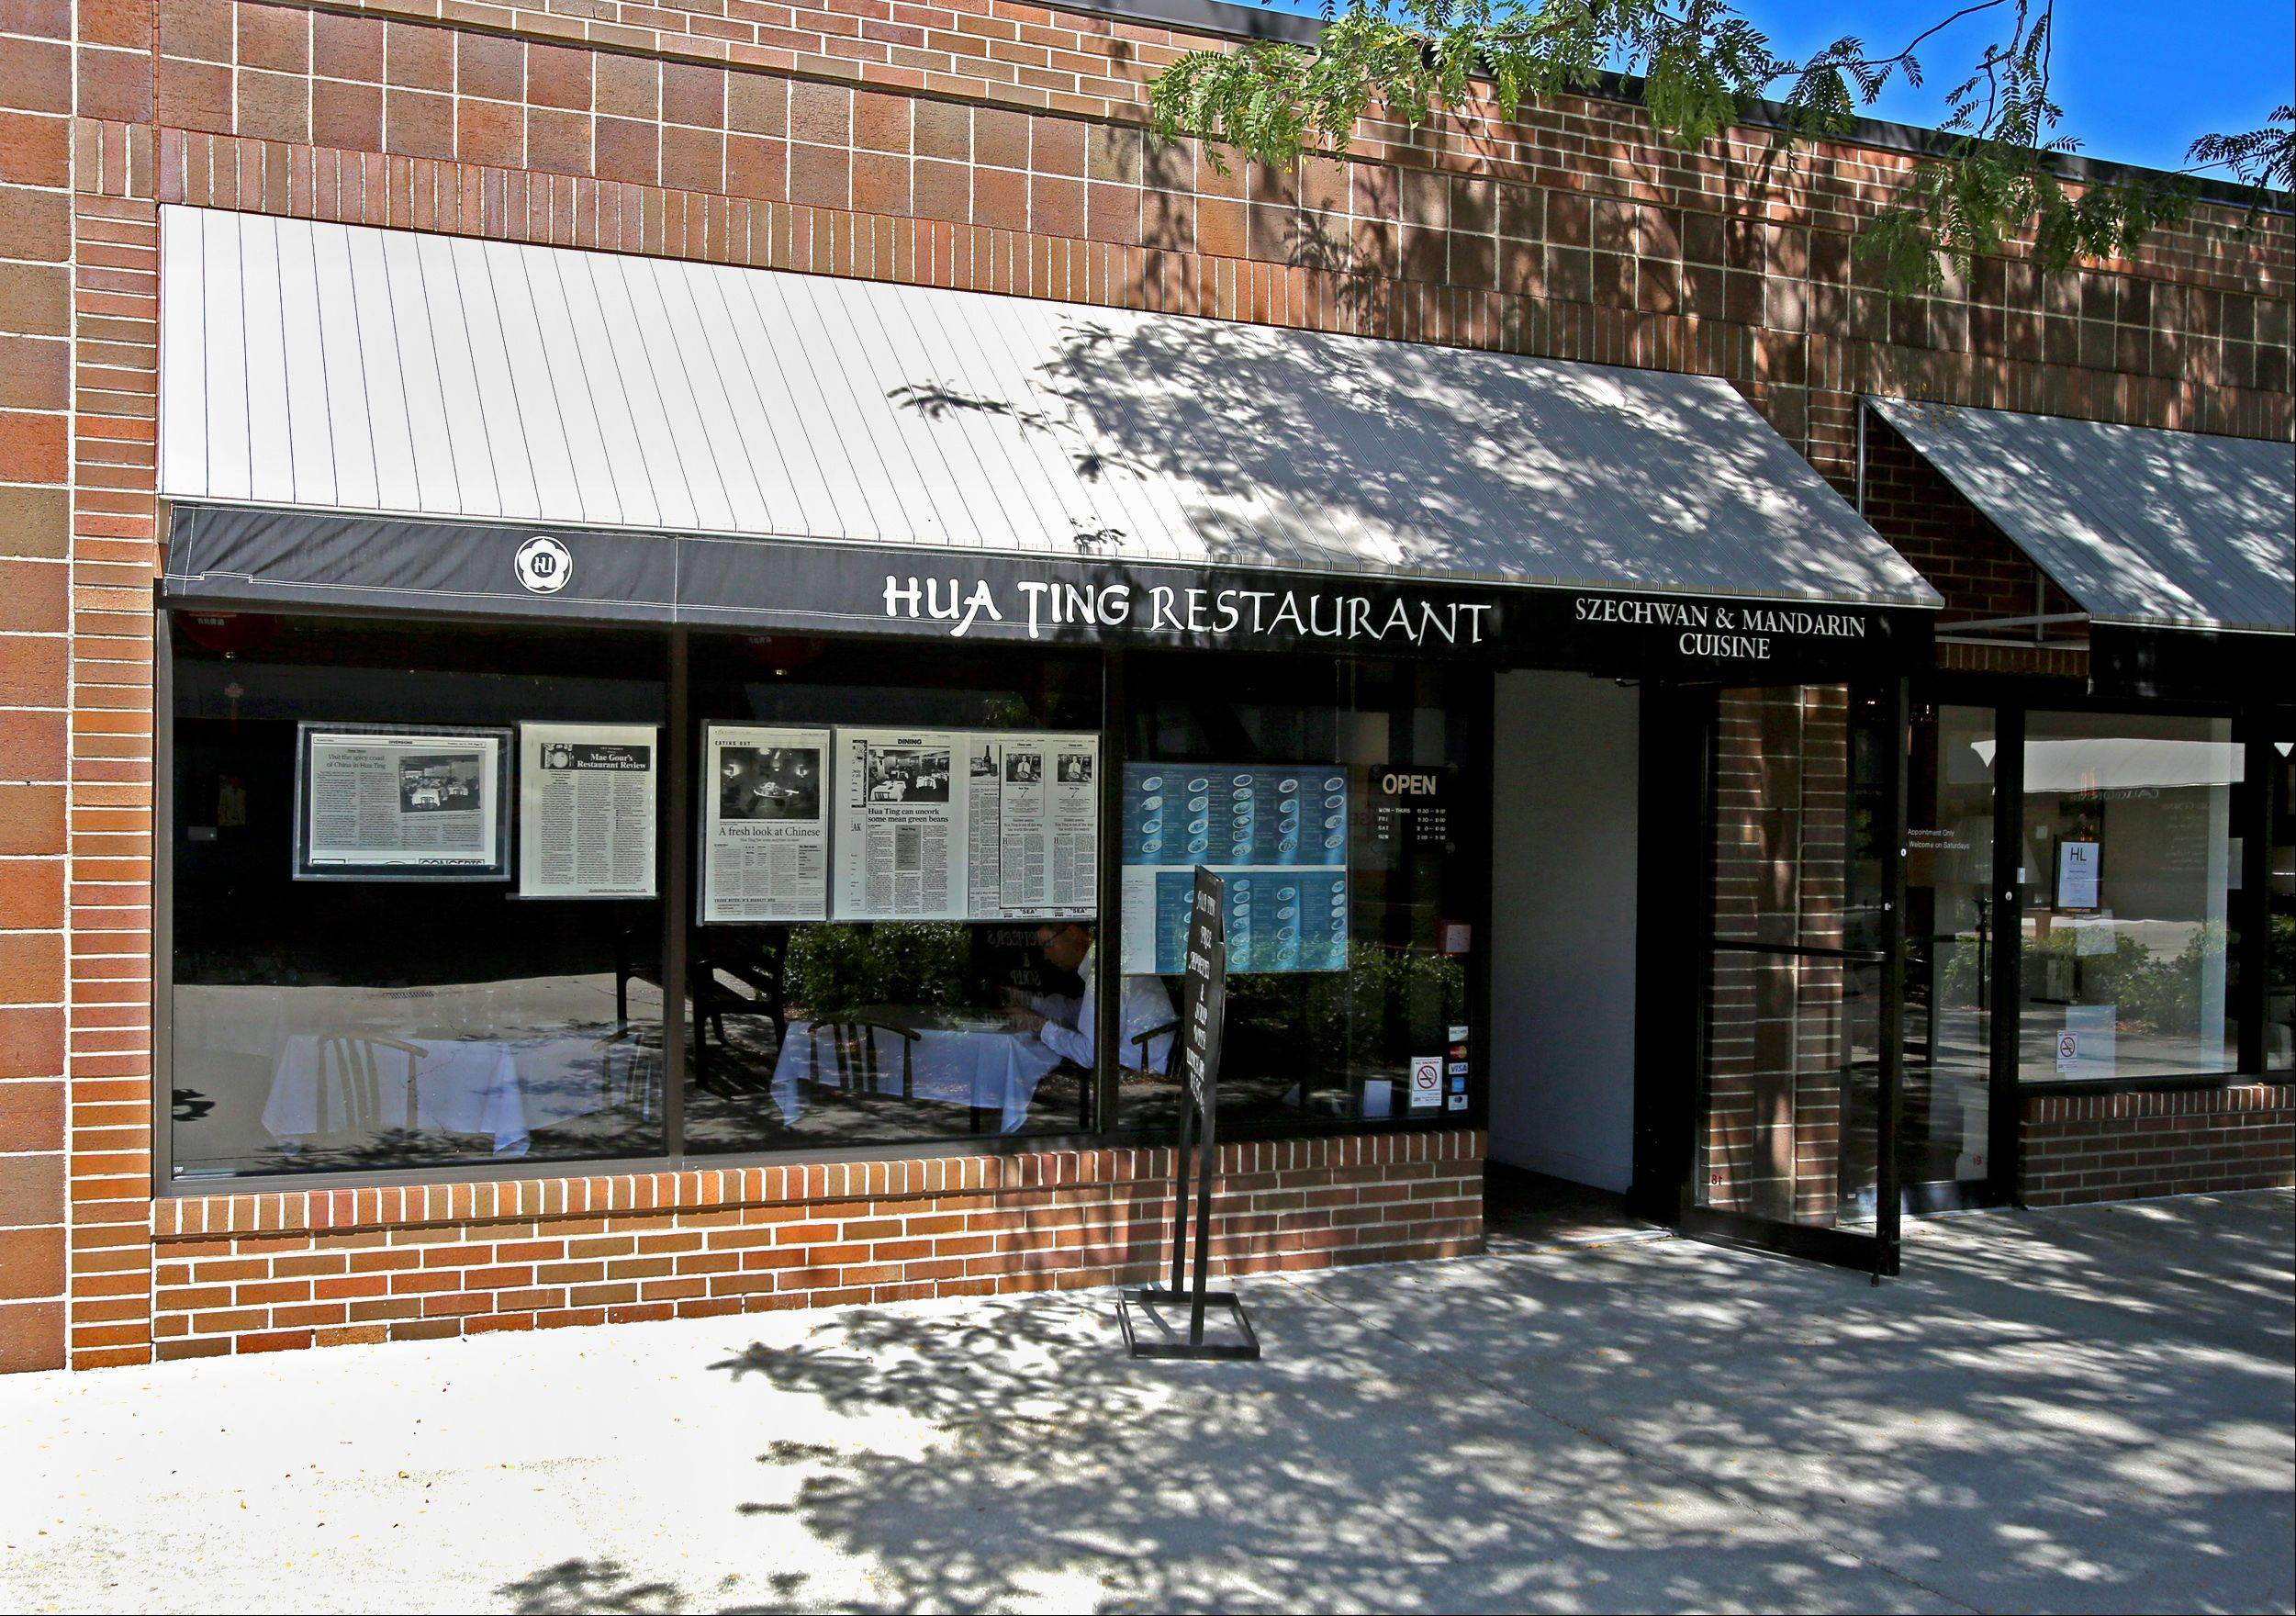 Hua Ting offers Szechwan and Mandarin cuisine at Gateway Square on York Road in Hinsdale.